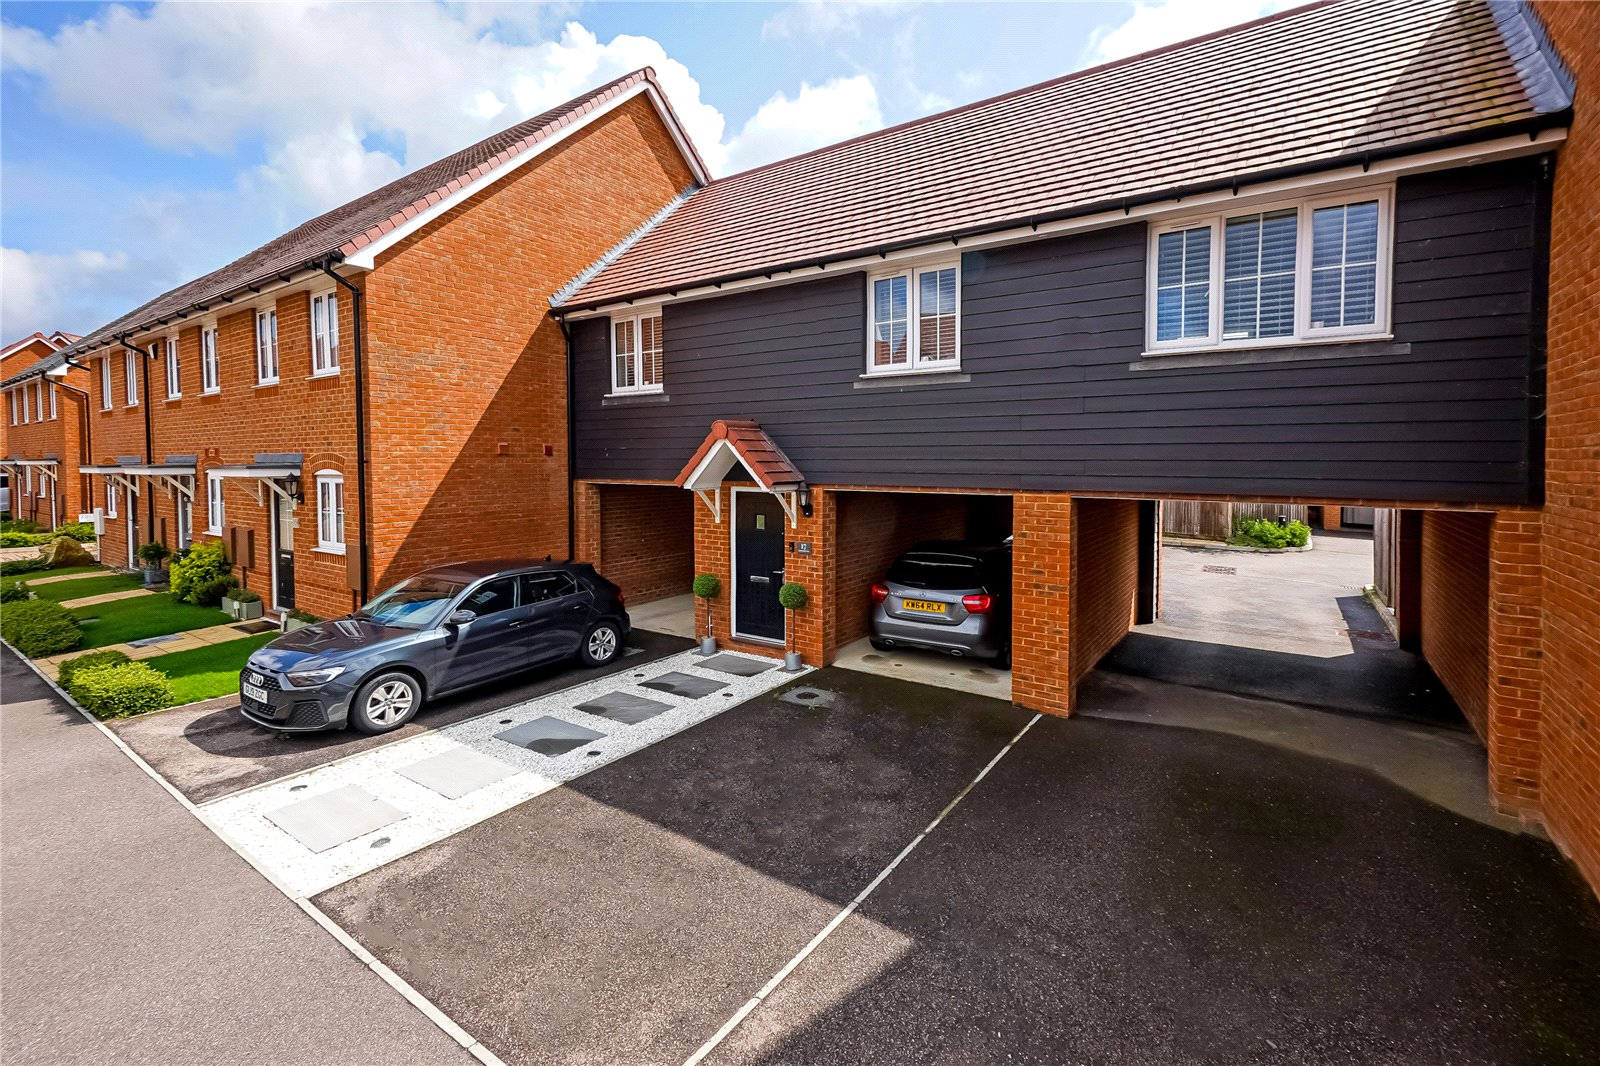 2 bed house for sale in Southfields Way, Harrietsham, ME17